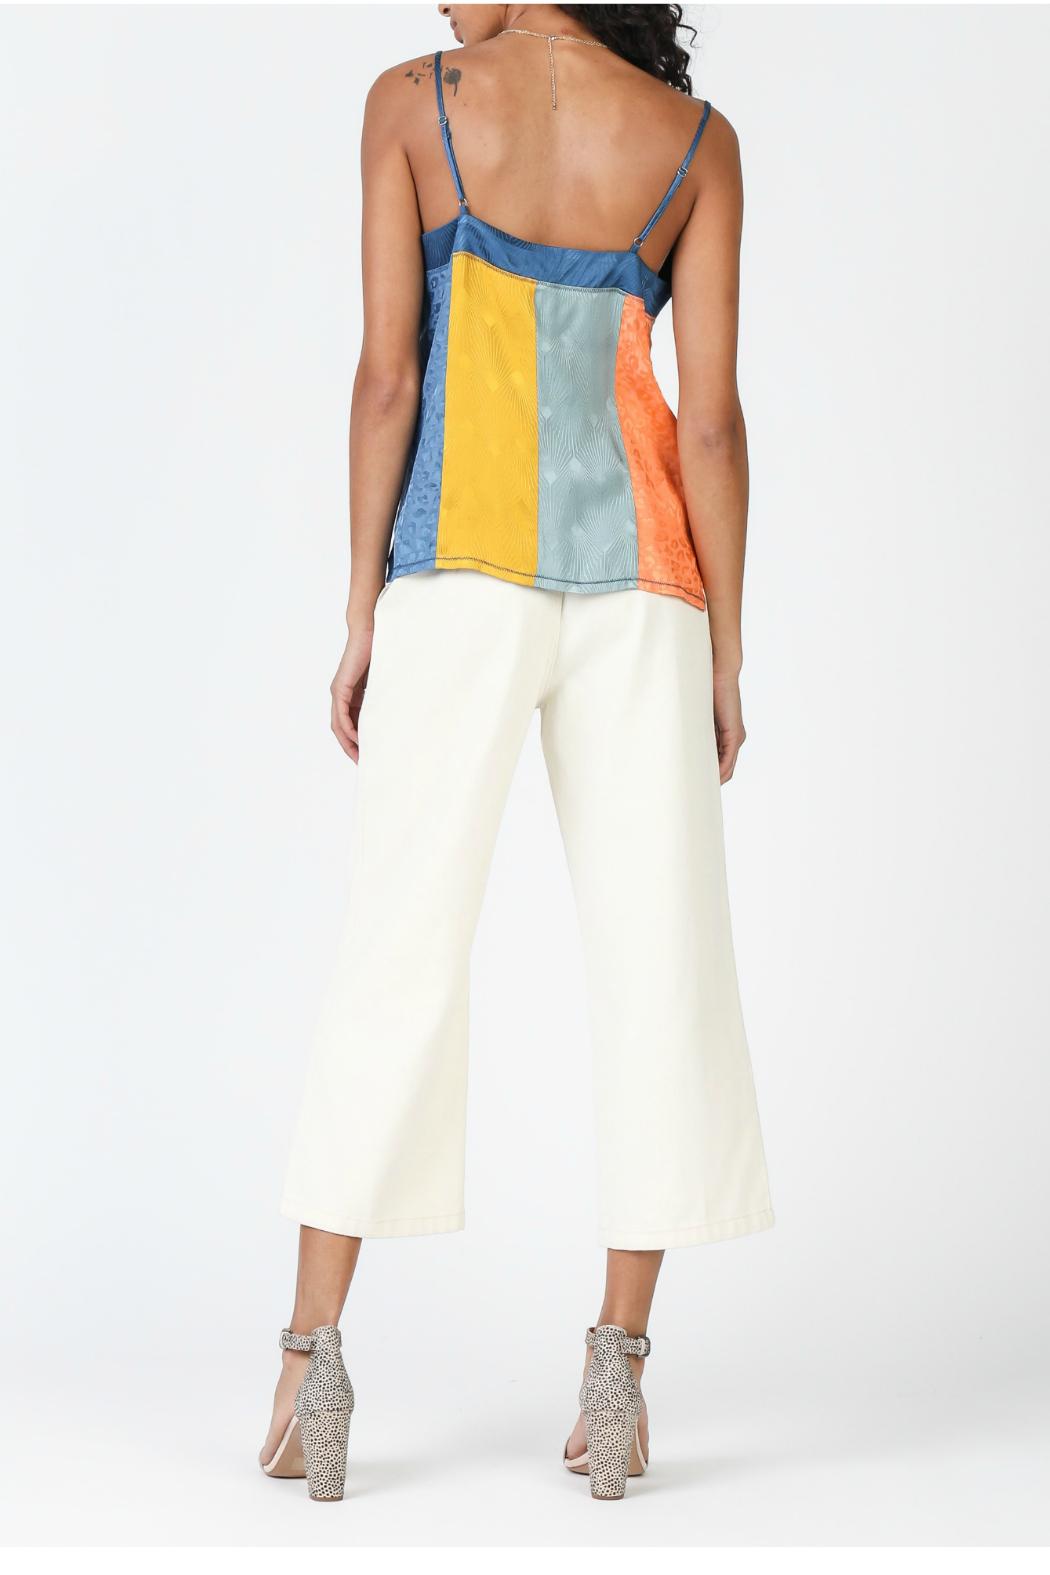 Current Air Color Block Cami Top - Front Full Image